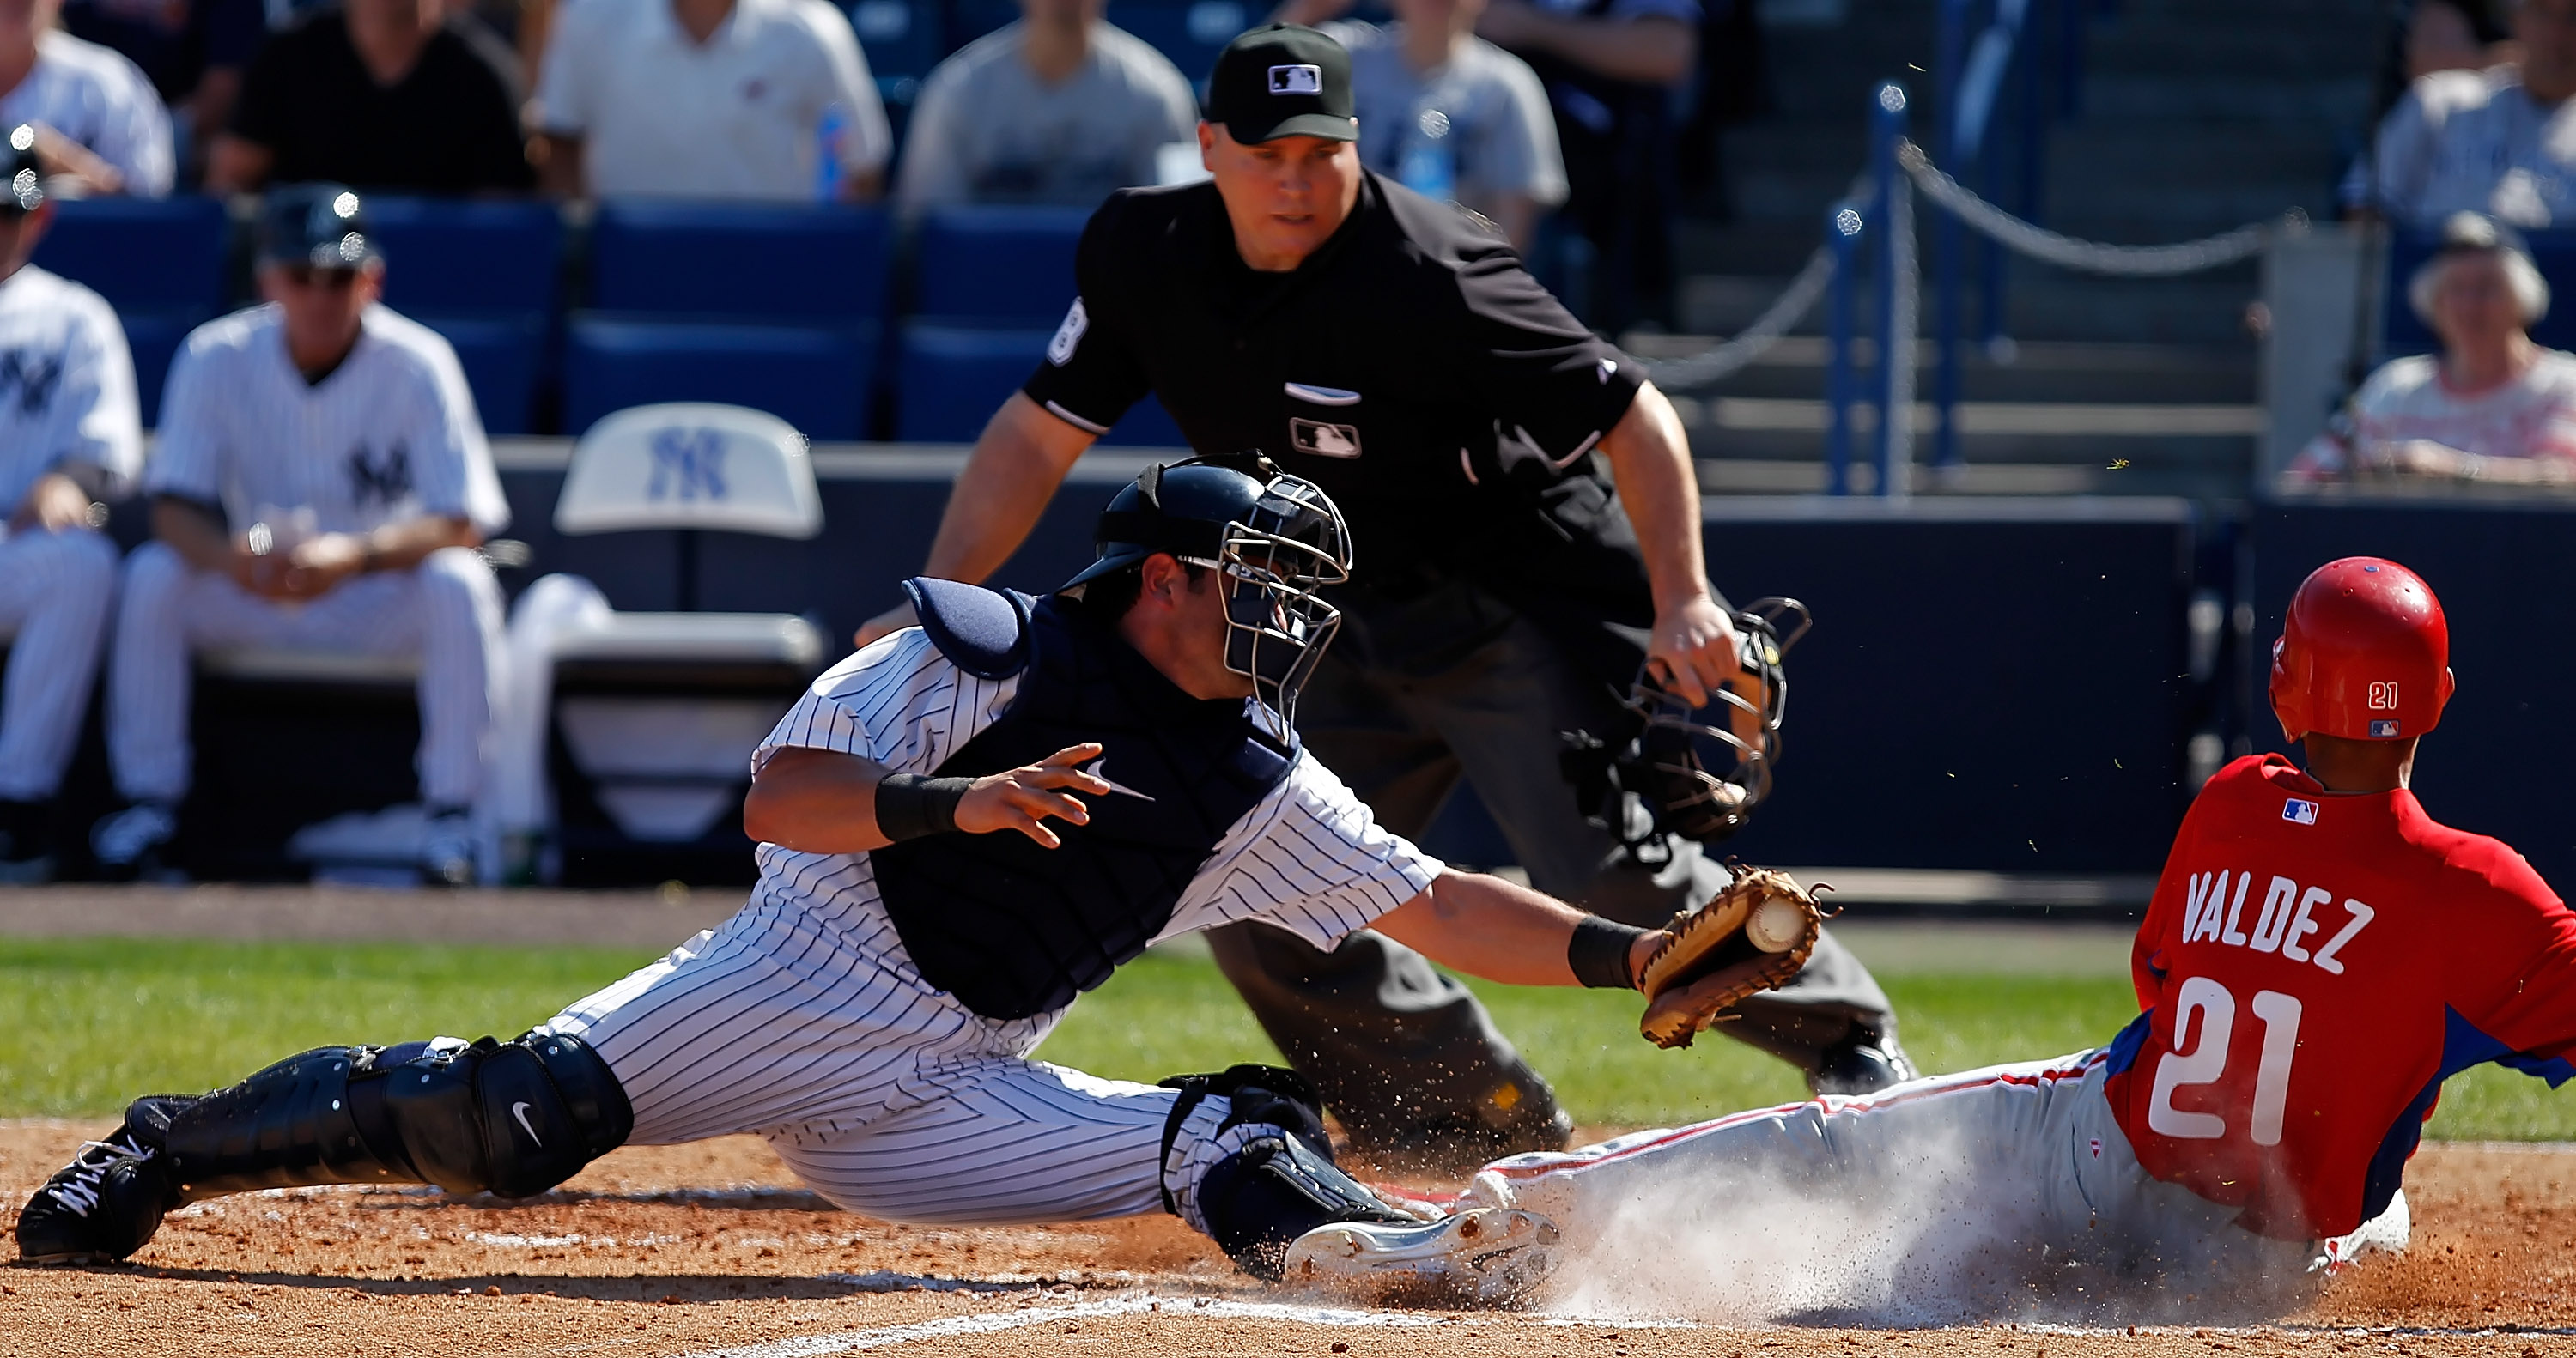 TAMPA, FL - FEBRUARY 26:  Outfielder Wilson Valdez #21 of the Philadelphia Phillies scores a run as catcher Francisco Cervelli #17 of the New York Yankees is late with the tag during a Grapefruit League Spring Training Game at George M. Steinbrenner Field